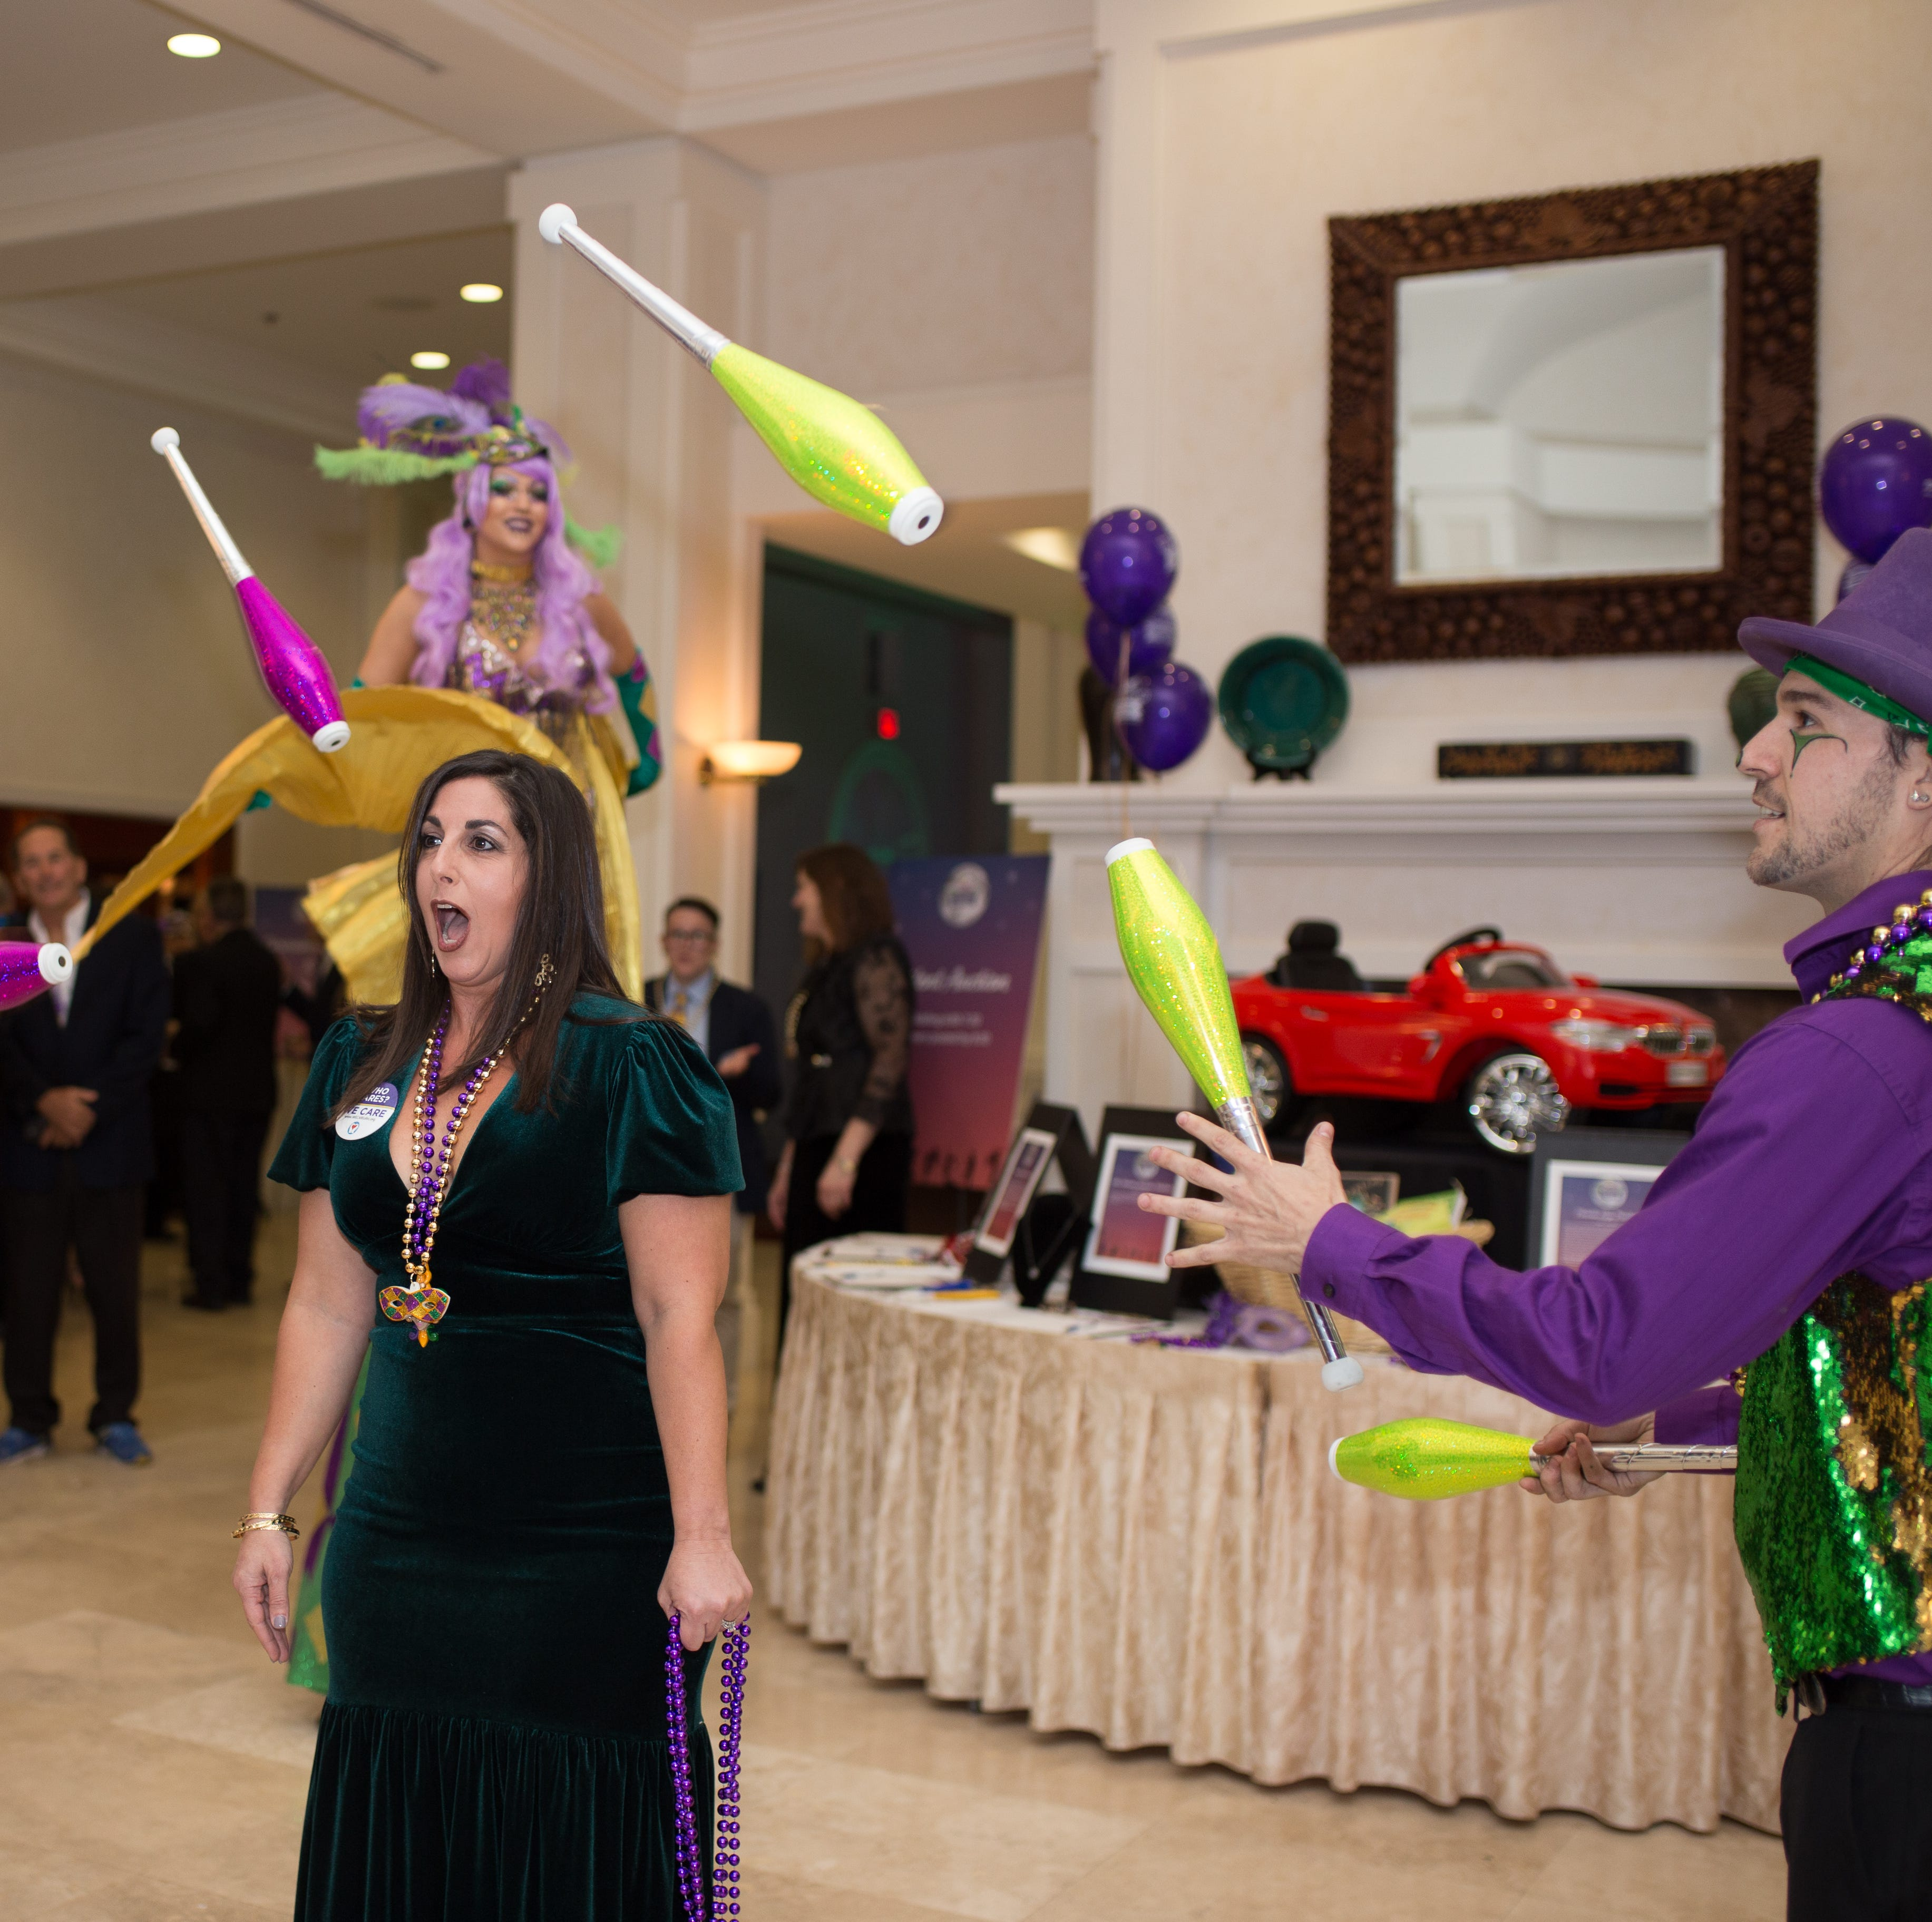 Bourbon Street comes alive at fifth annual Mardi Gras Celebration for We Care Foundation